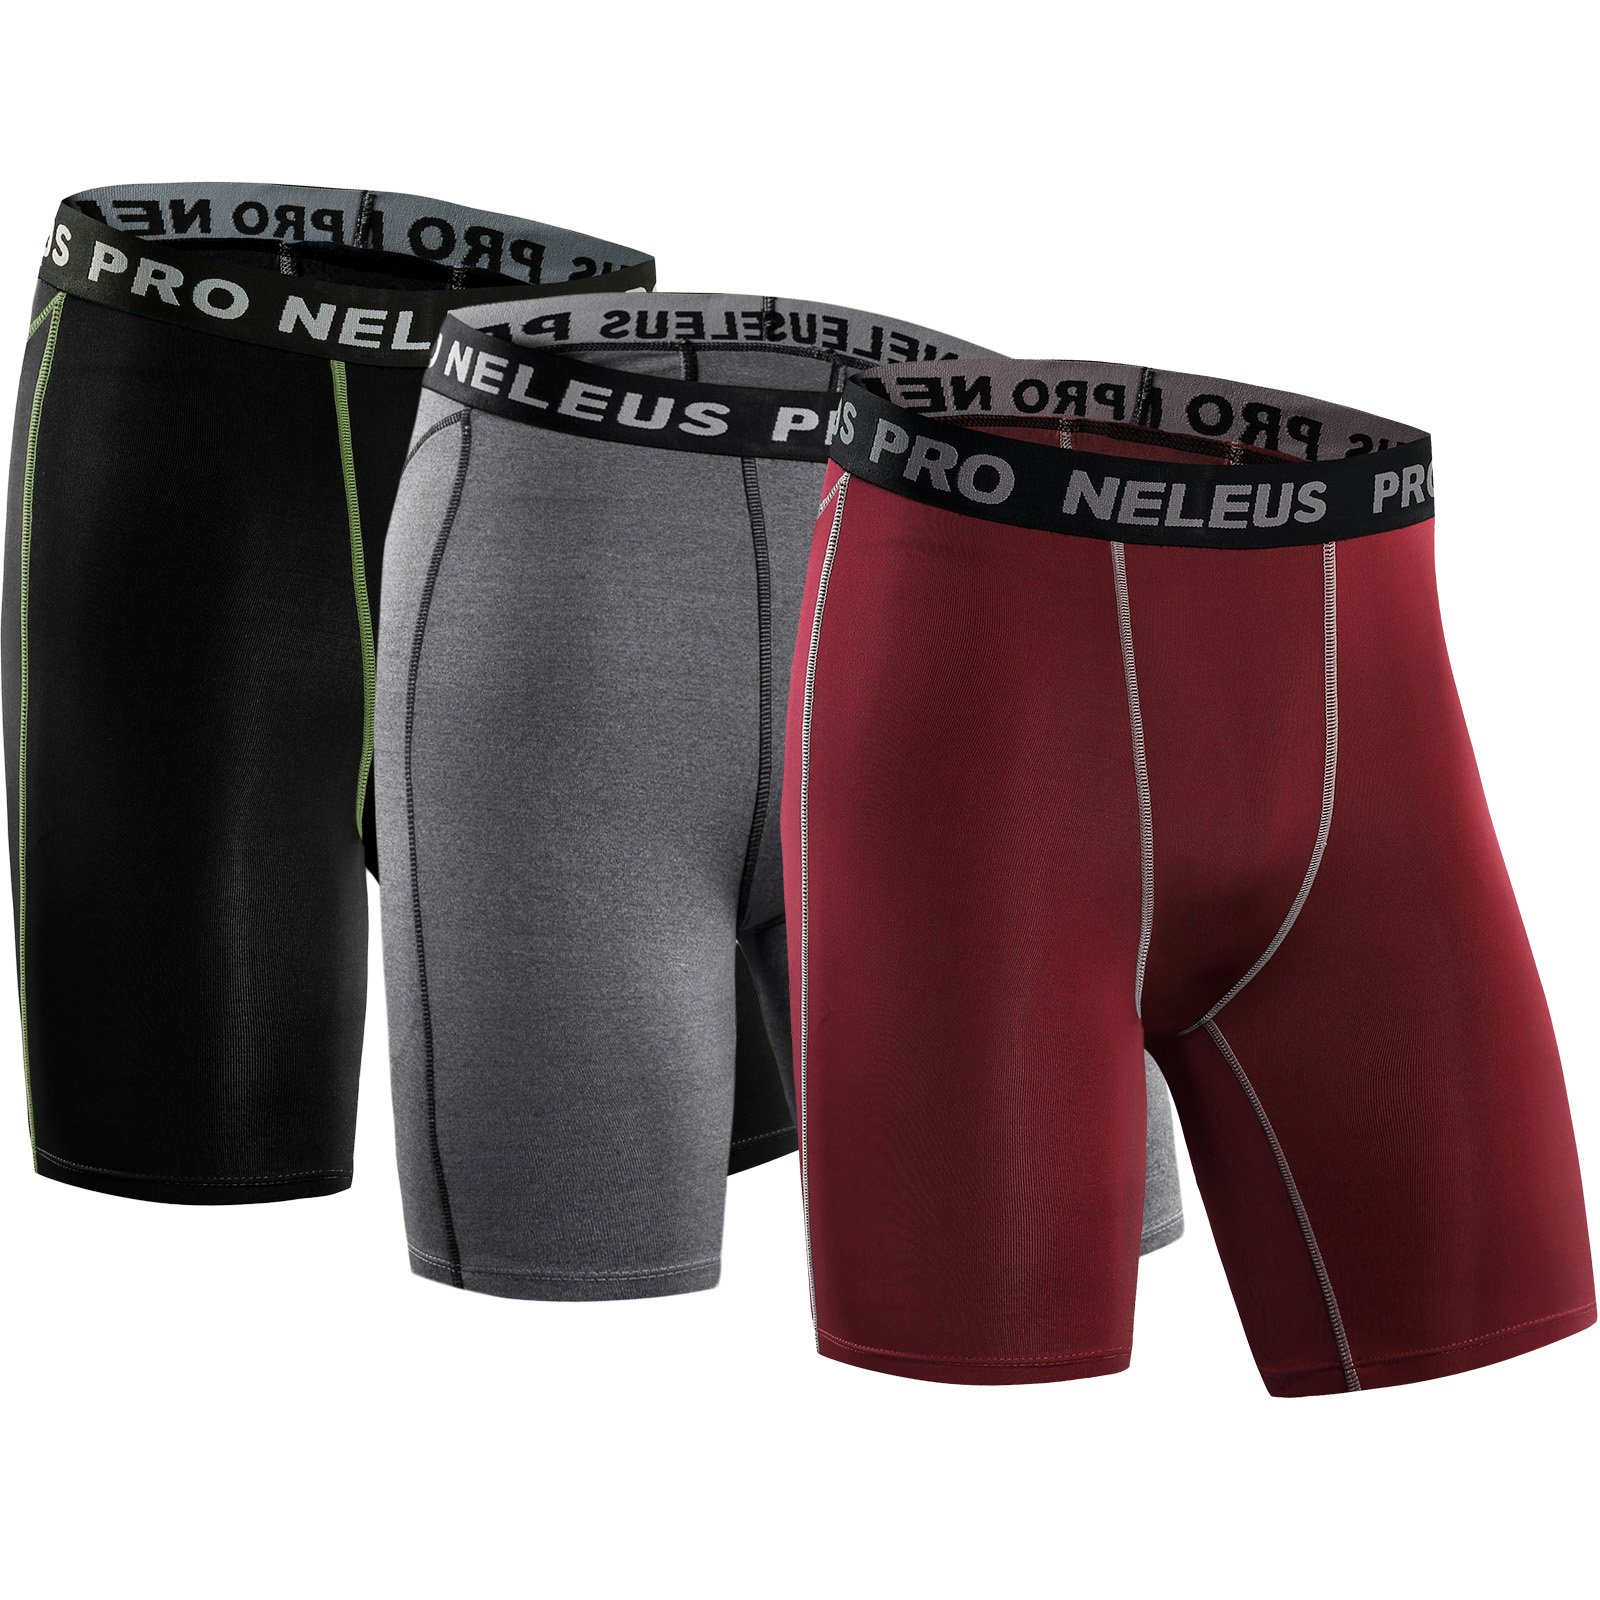 Neleus Men's 3 Pack Compression Short,047,Black,Grey,red,US S,EU M